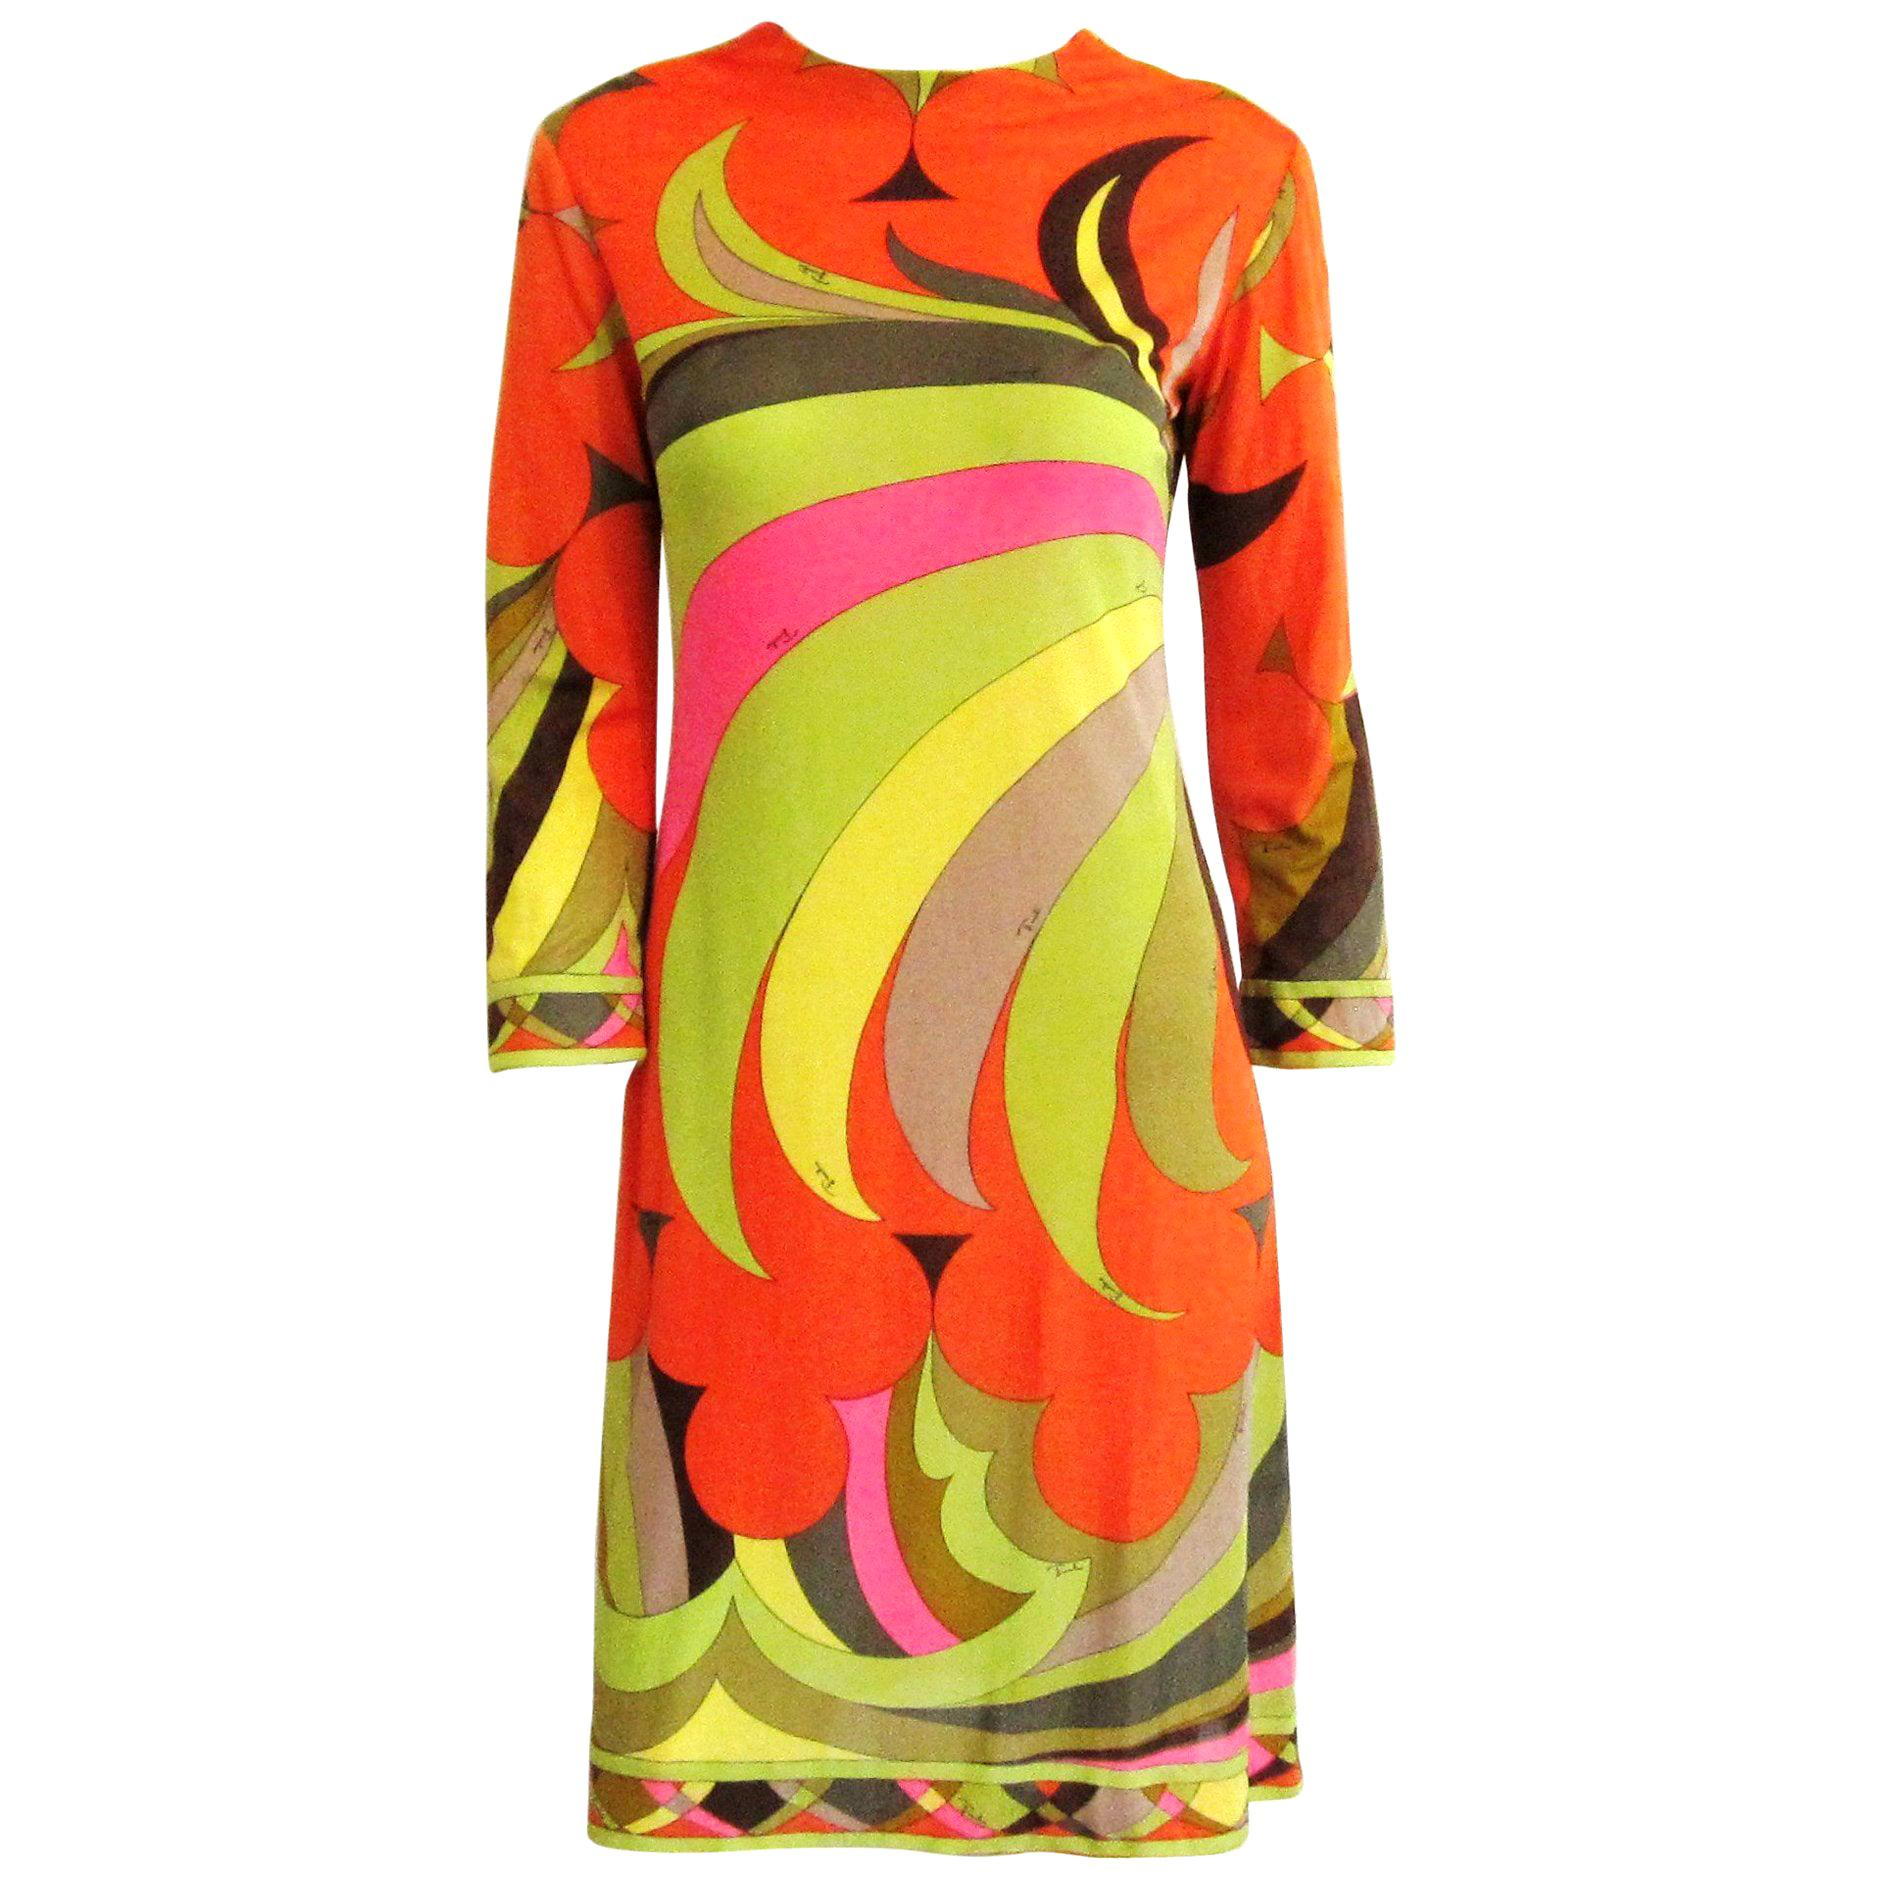 EMILIO PUCCI Dress Multi color Silk Long Sleeve Mod Print 1960s XS Small Vintage